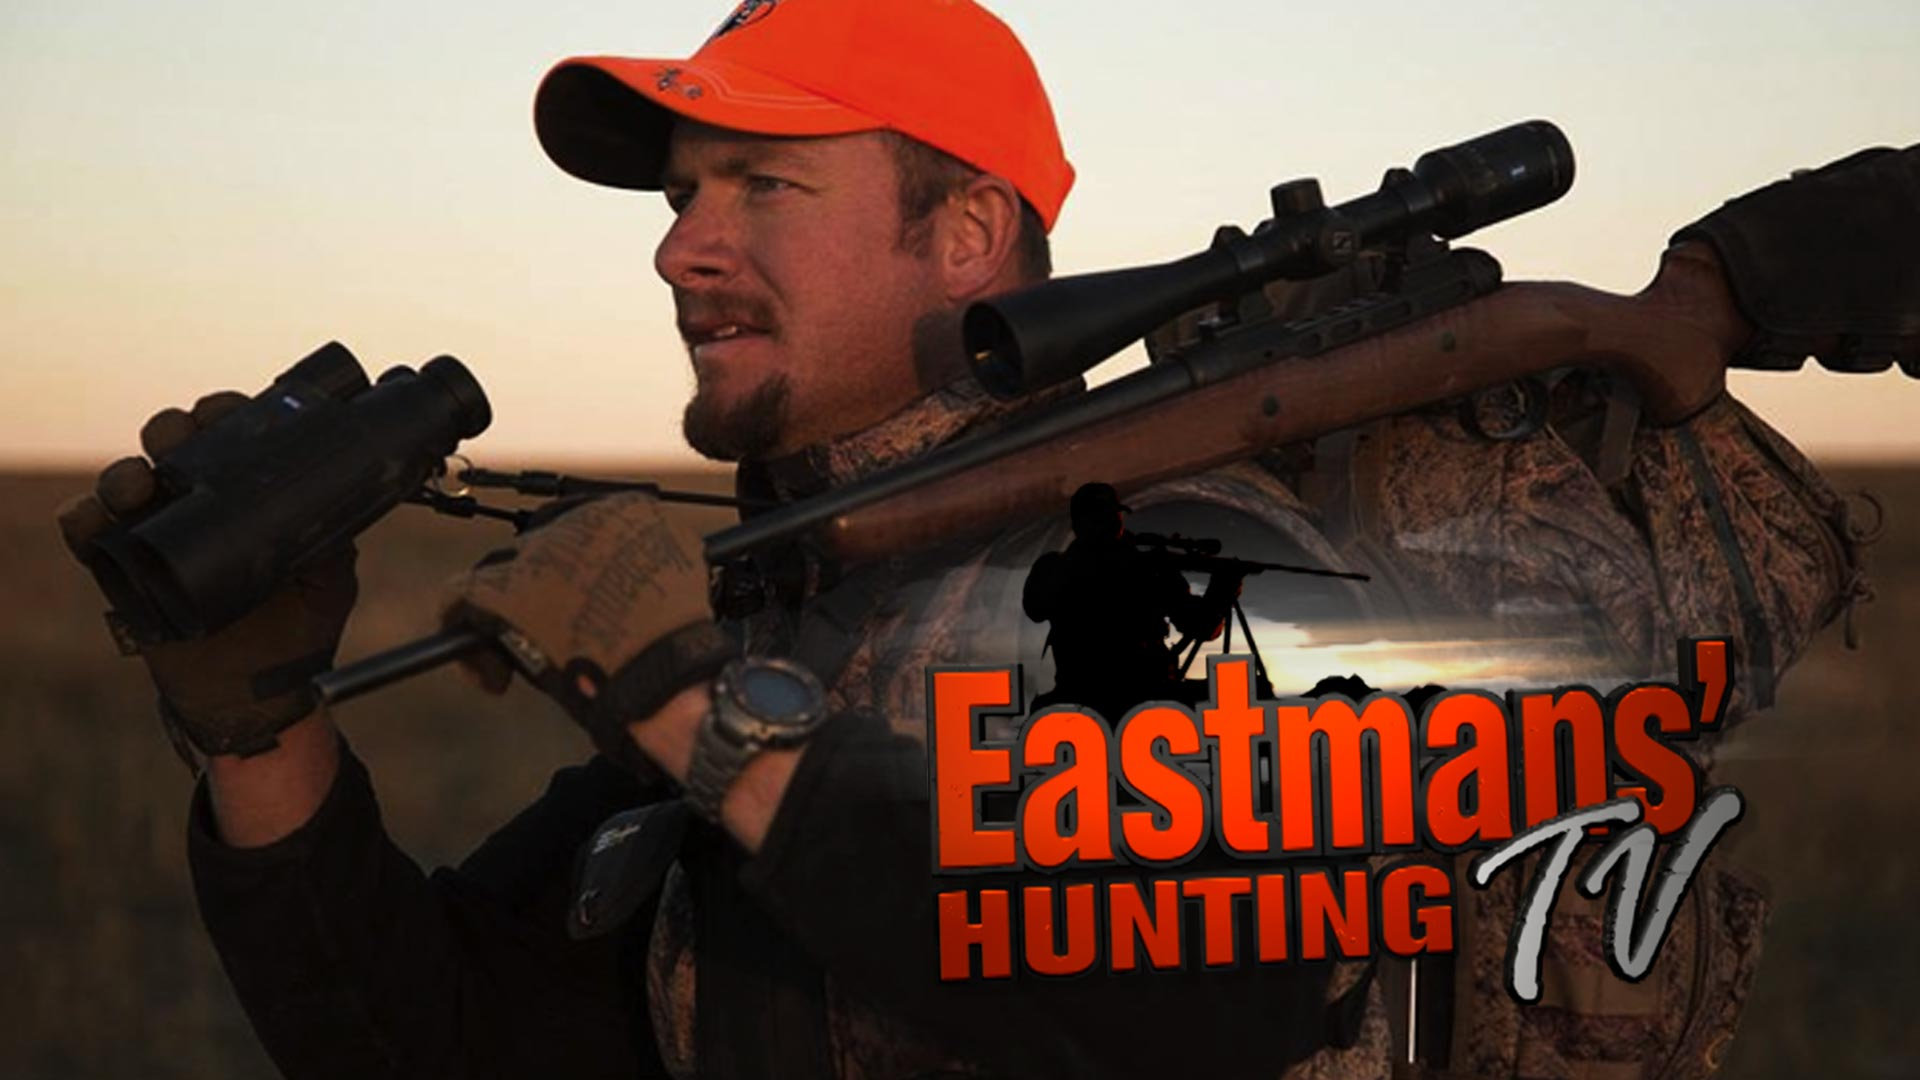 Eastmans' Hunting TV